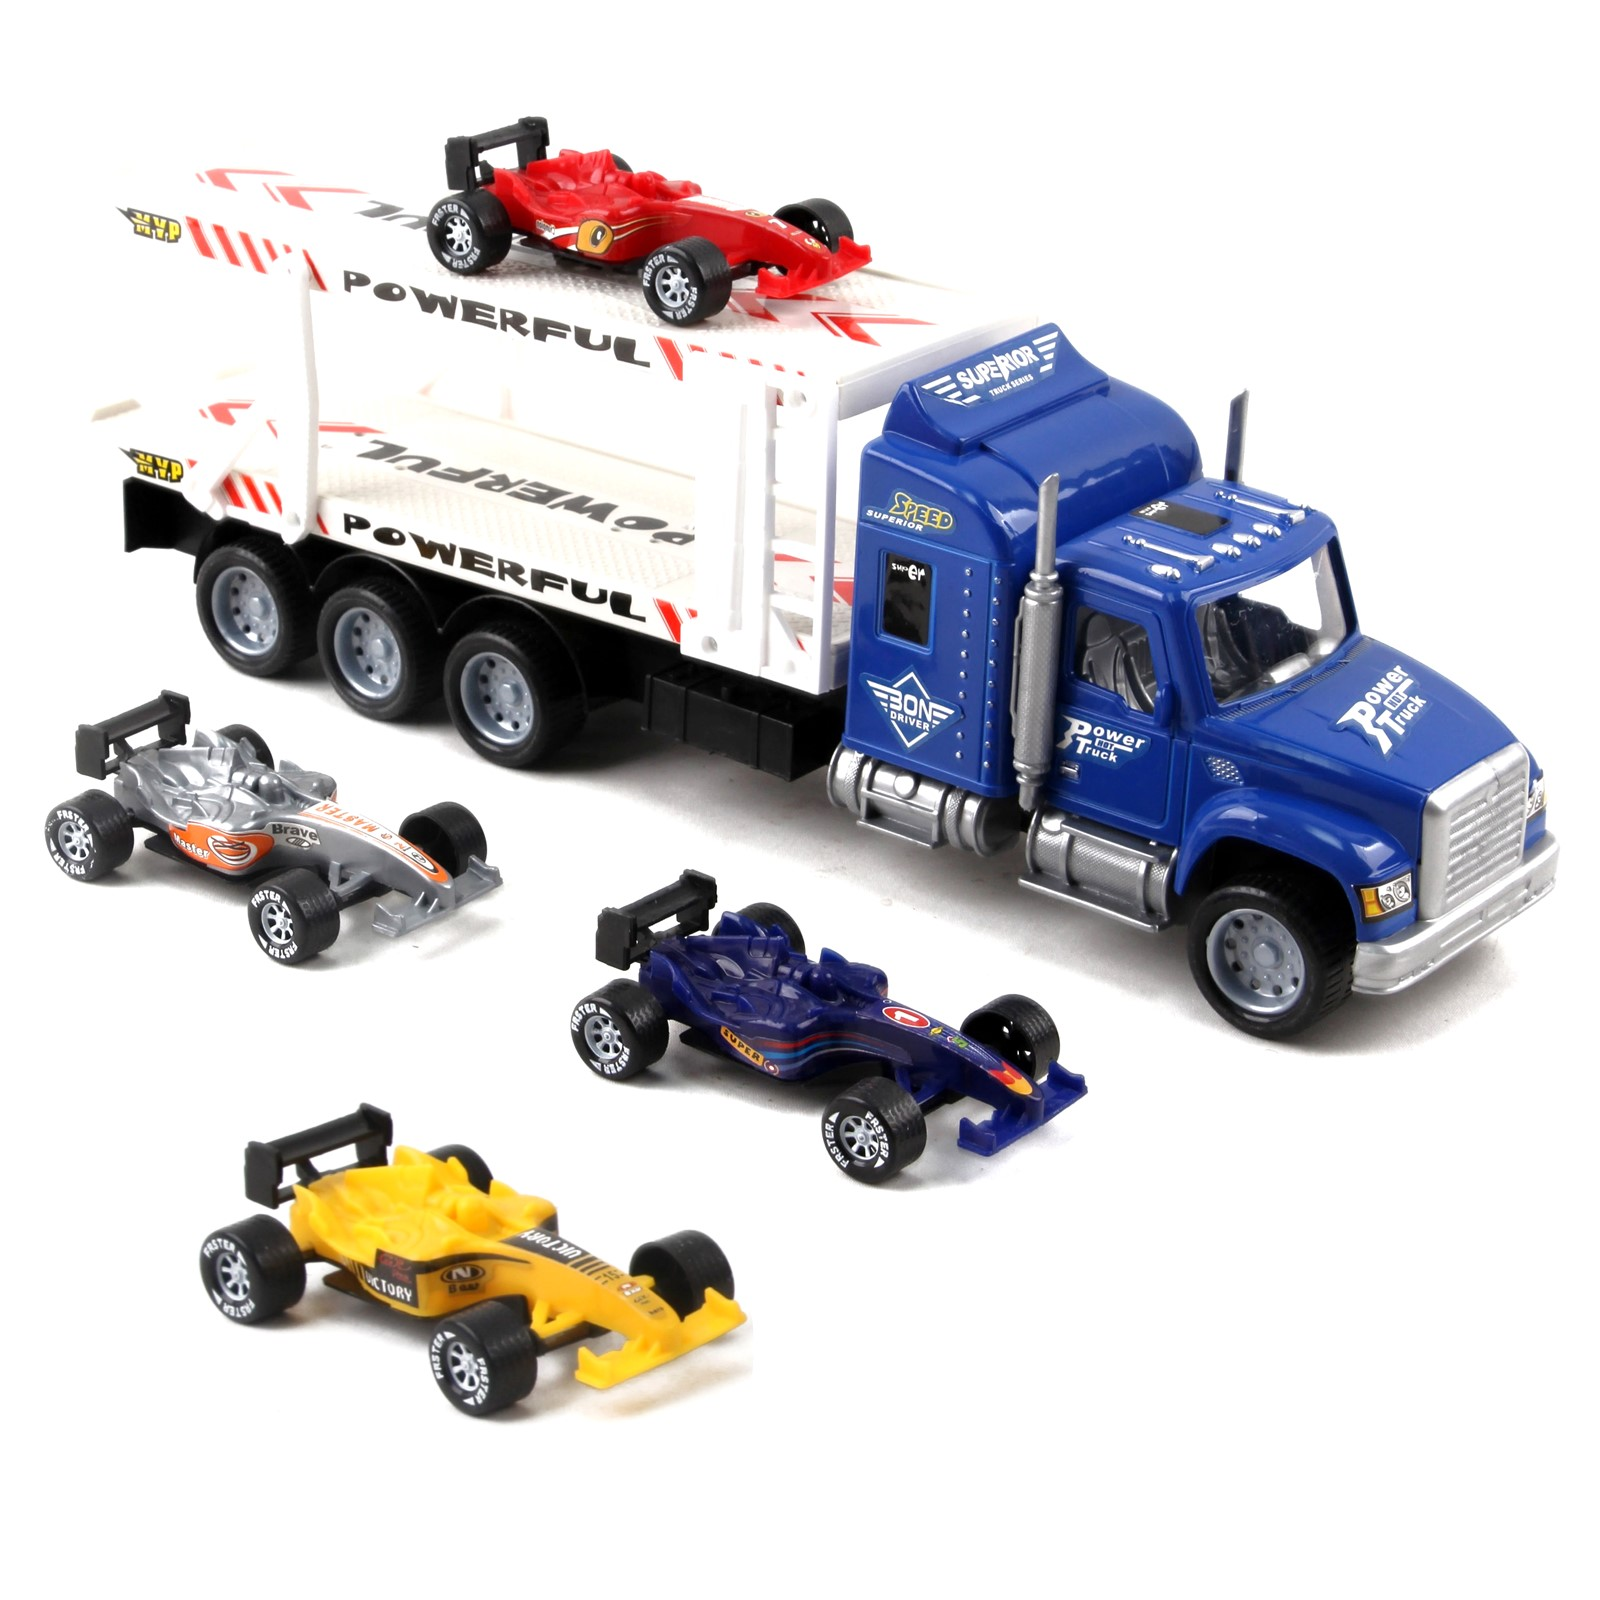 "Friction Powered Toy Semi Truck Trailer 14.5"" With Four Formula 1 Race Cars Kids Push And Go Big Rig Carrier 1:32 Scale Auto Transporter Semi-Truck Play Vehicle Great Gift For Children Boy Girl"